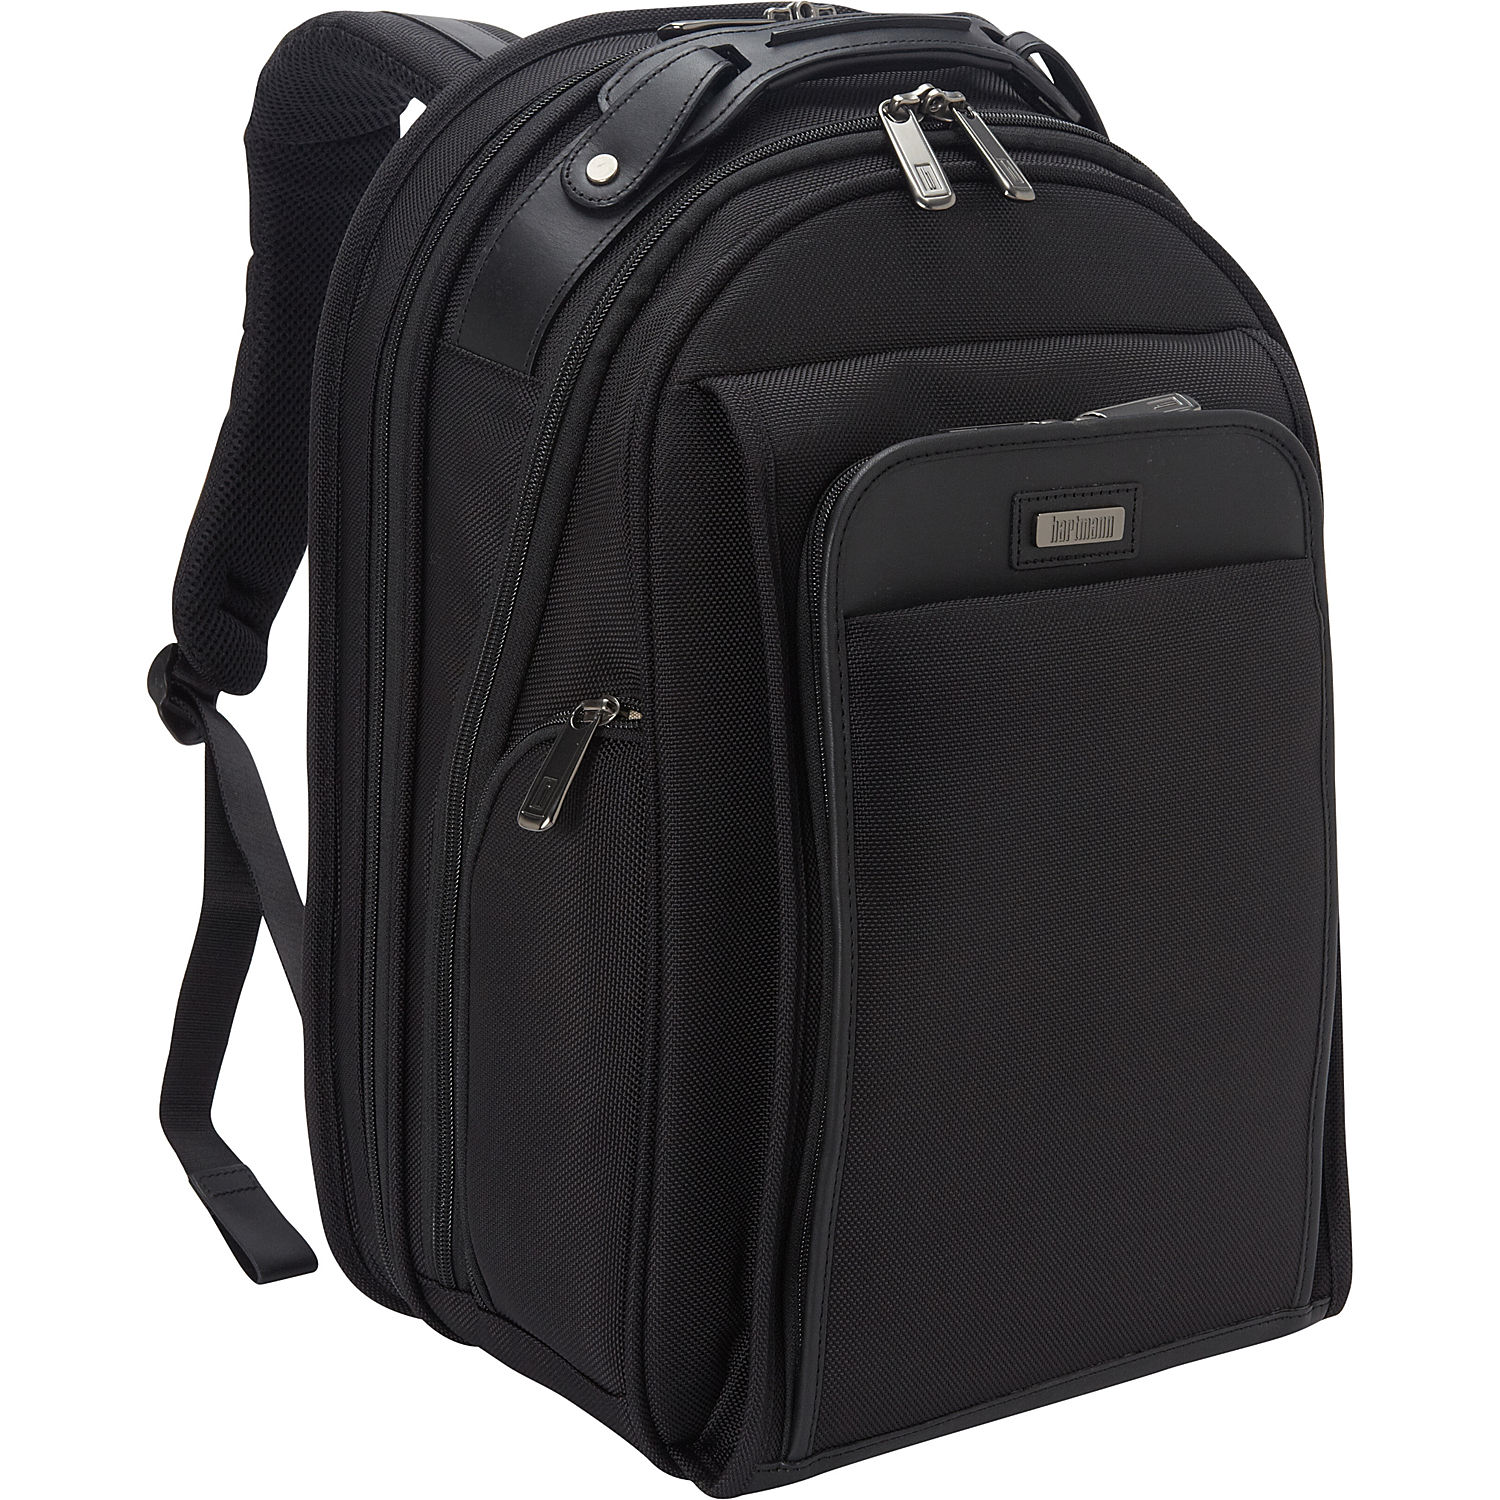 Reviewing Hartmann Intensity Belting Two Compartment Business Backpack